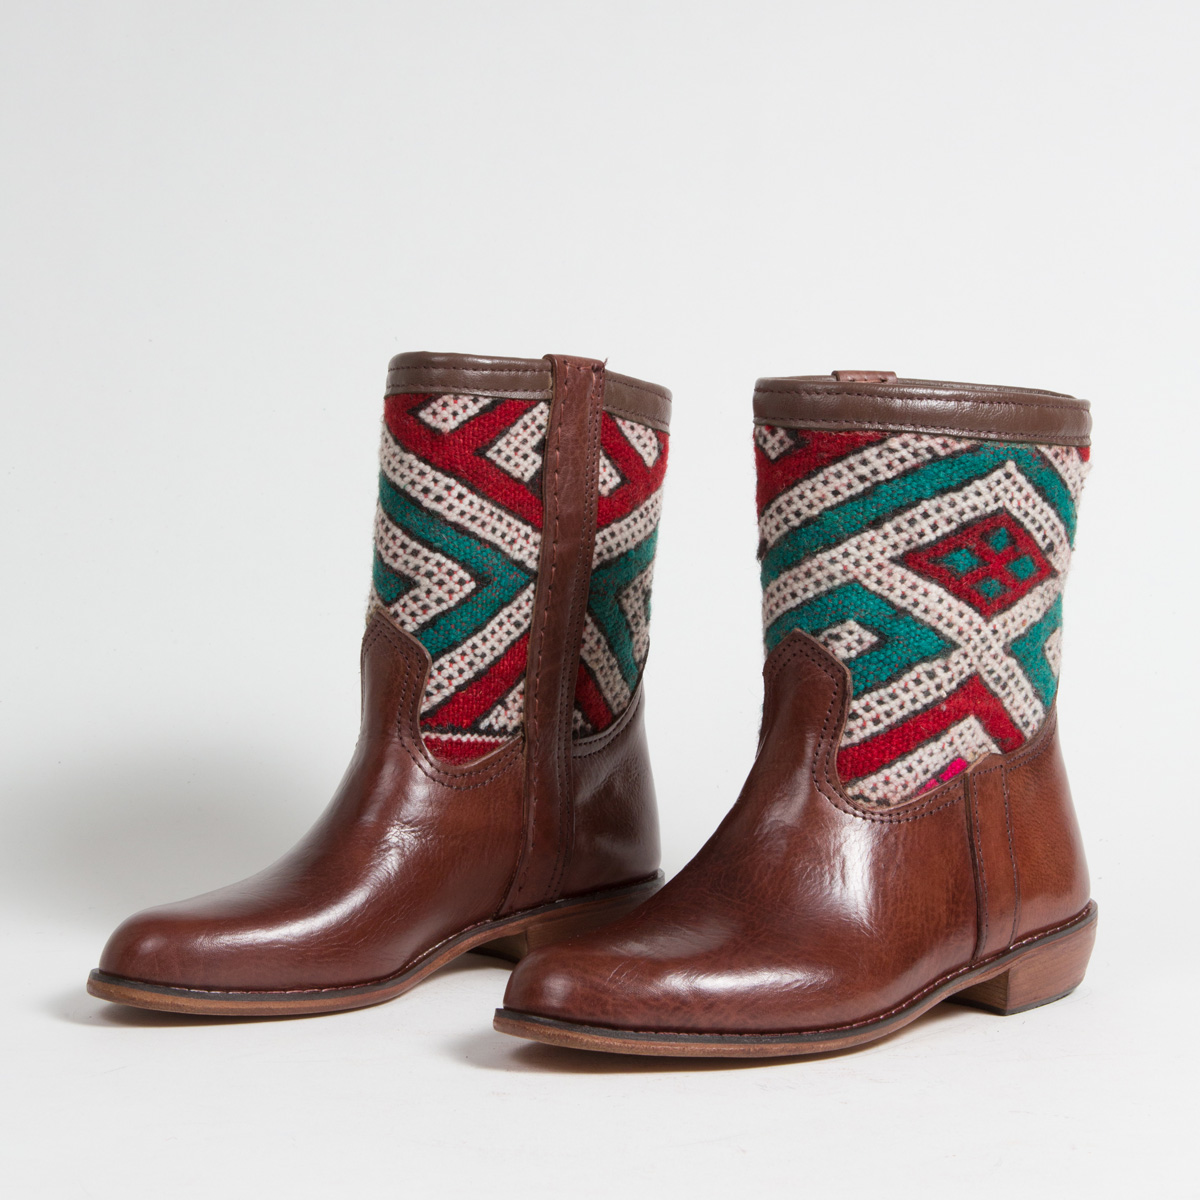 Bottines Kilim cuir mababouche artisanales (Réf. CB1-37)